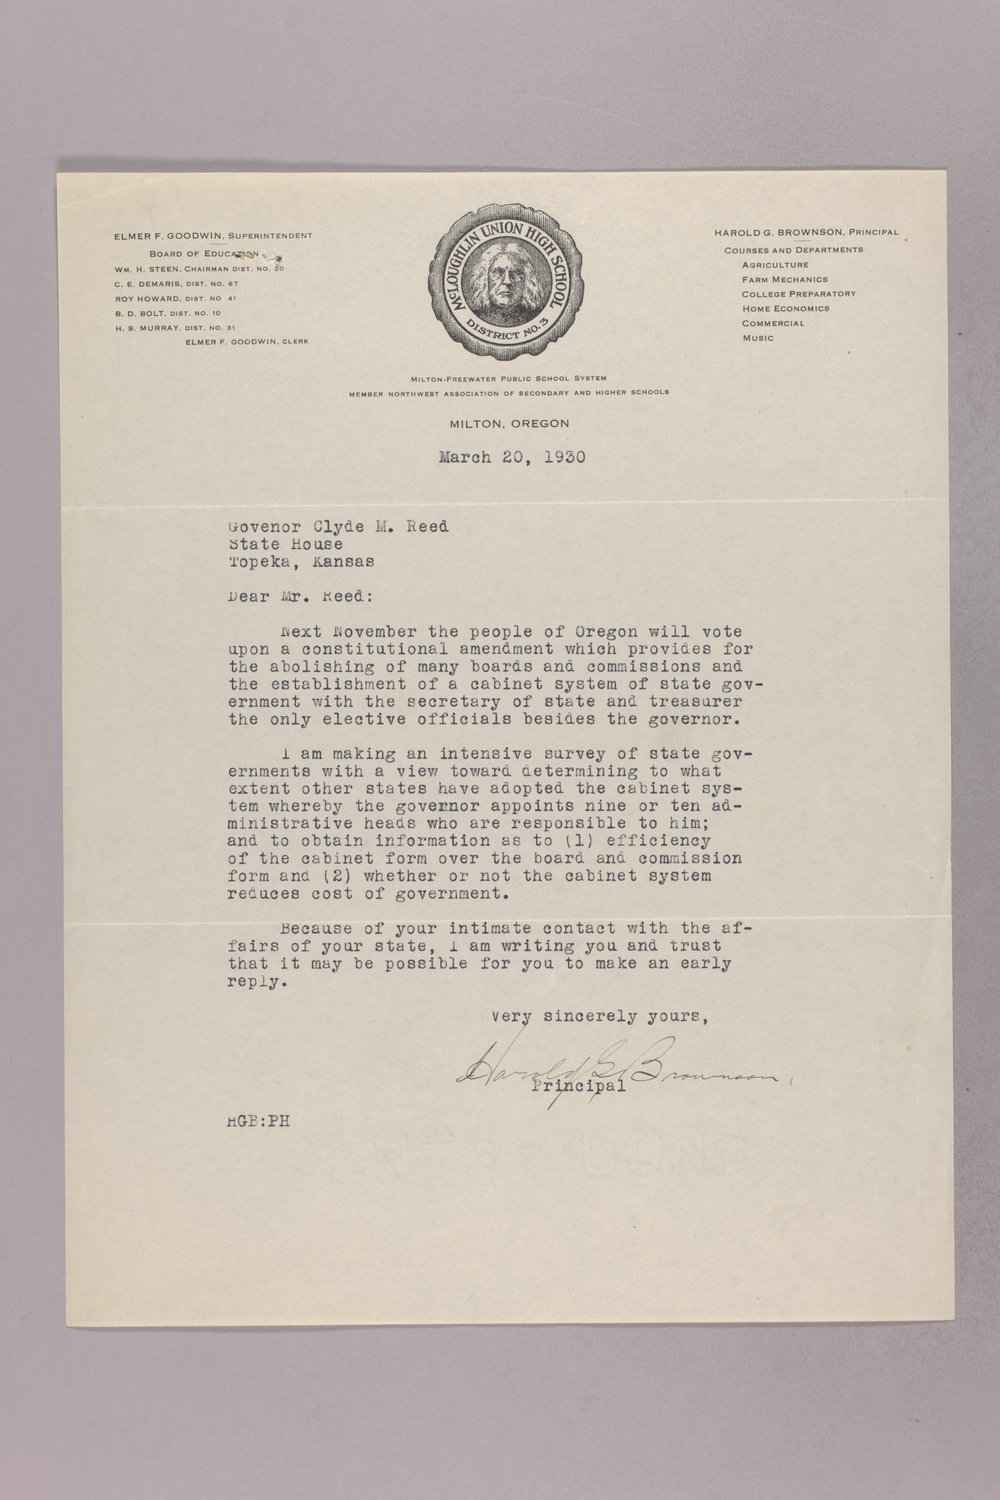 Governor Clyde M. Reed correspondence, reports - 2